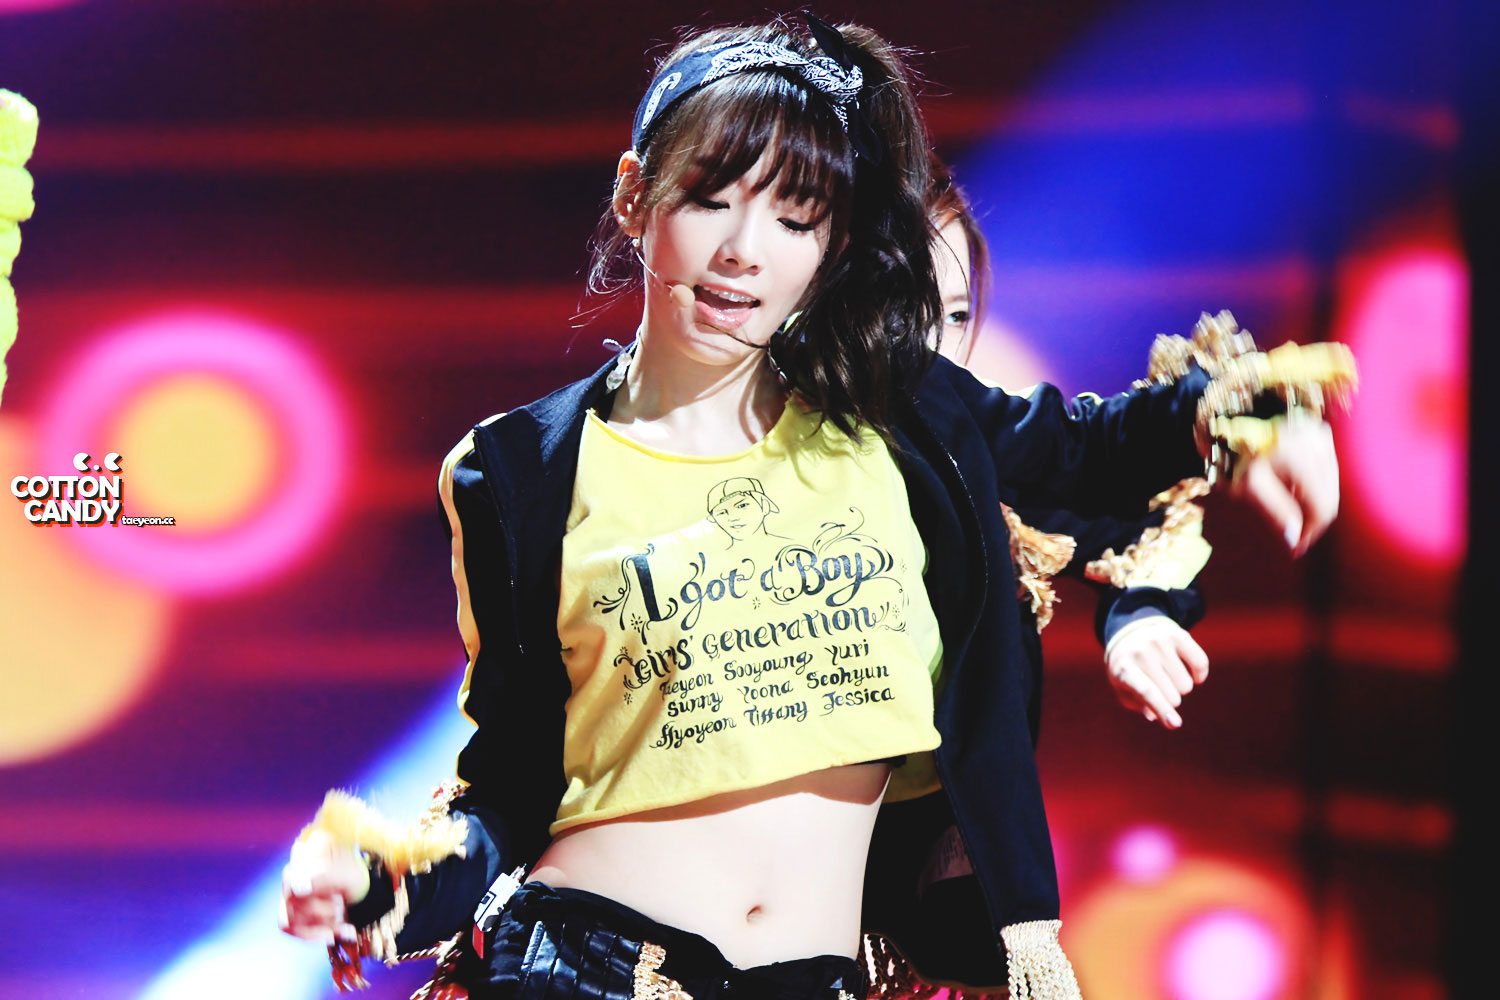 SNSD Taeyeon KBS Open Concert CottonCandy